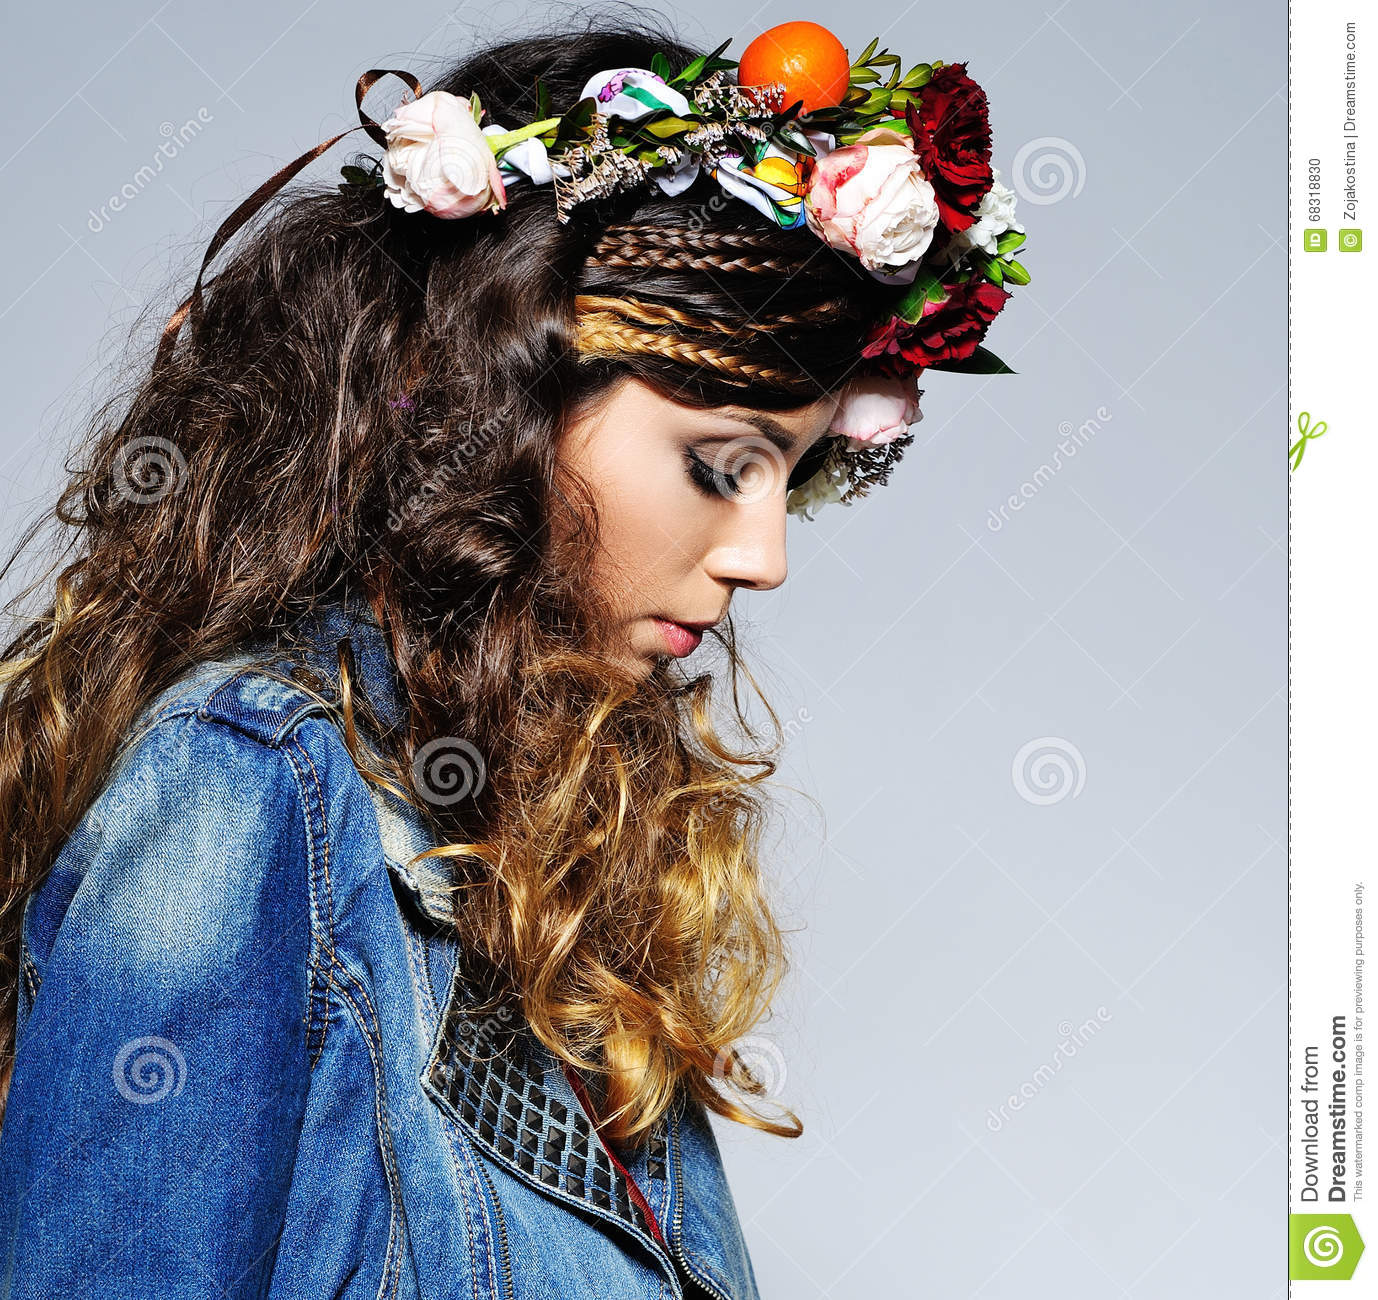 Volume hair with braids and flower crown stock photo image of boho fashion portrait of a beautiful young woman with gipsy hairstyle wearing handmade statement flower crown and trendy jeans outfit izmirmasajfo